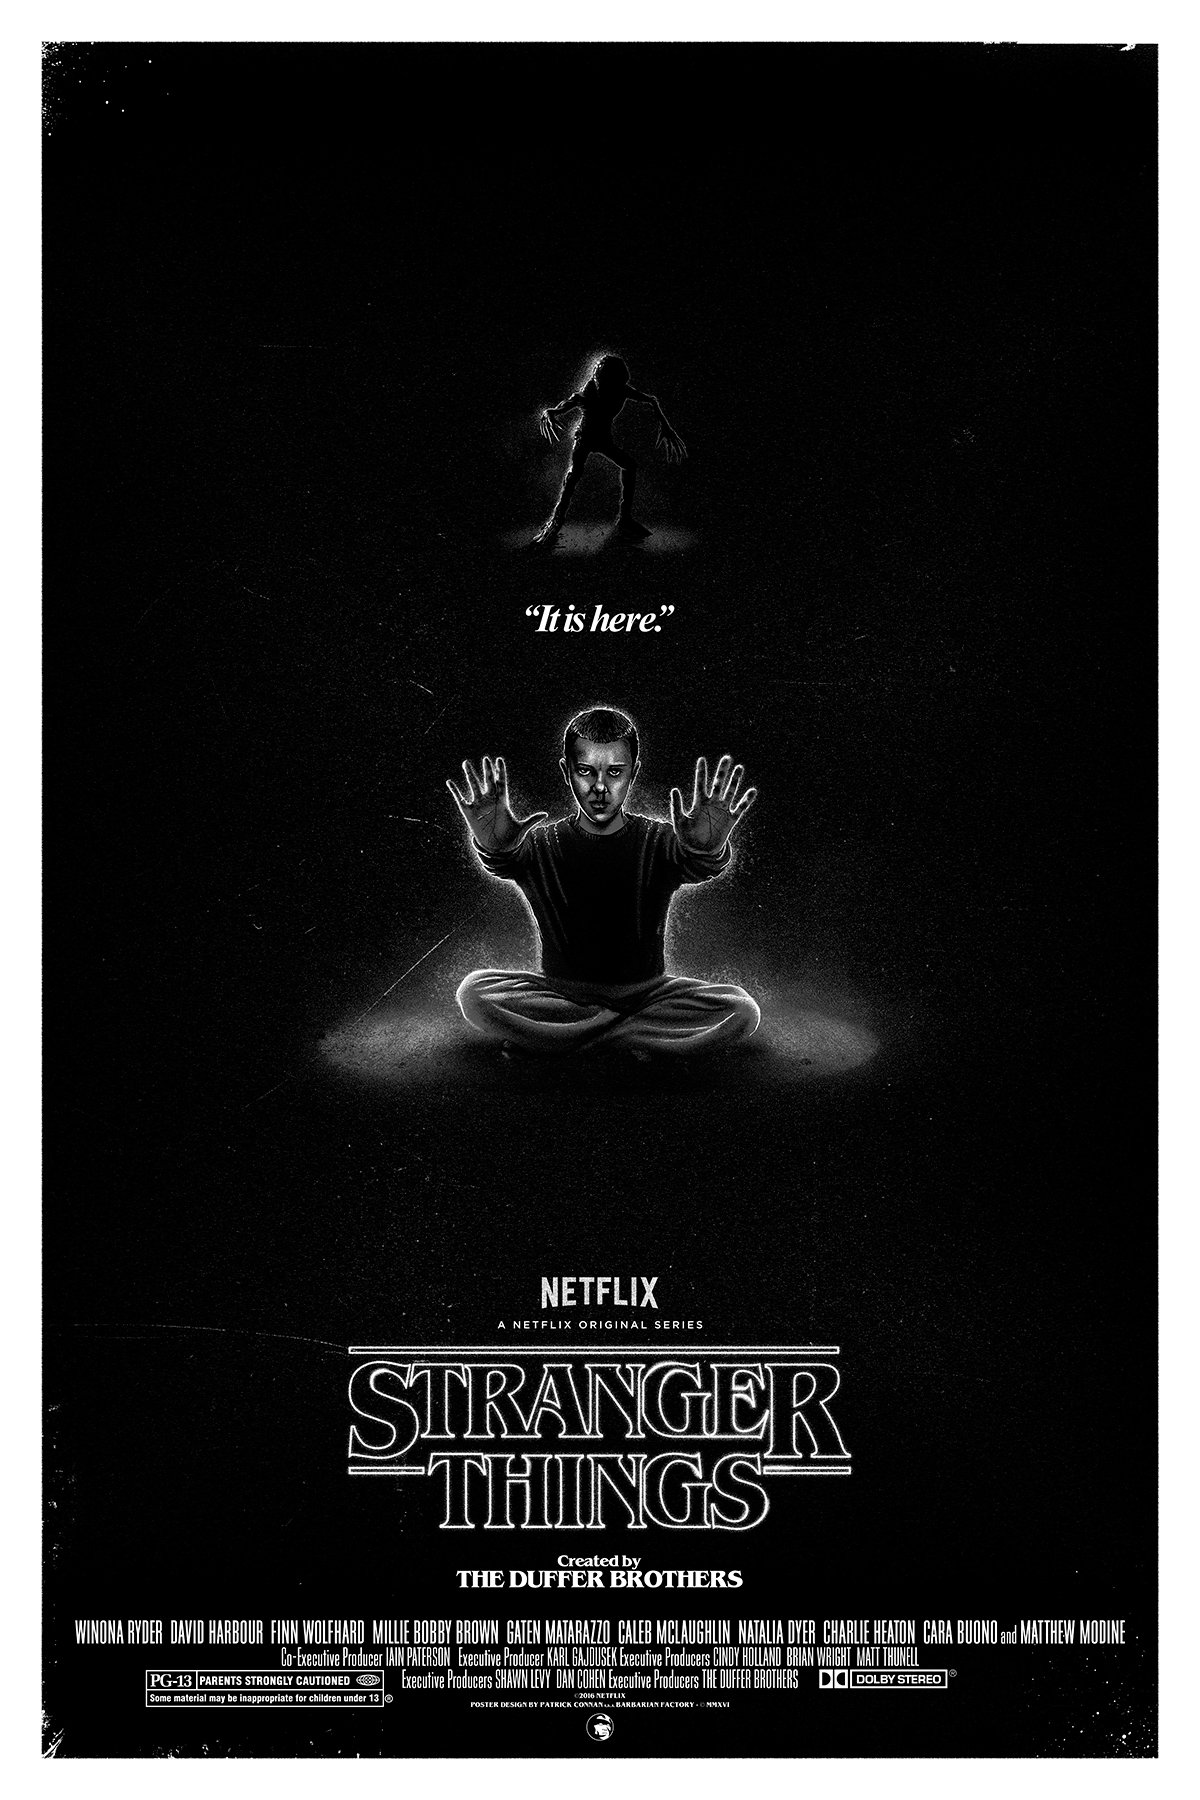 Stranger Things Iphone Wallpaper Stranger Things Are Happening With The Poster Posse S